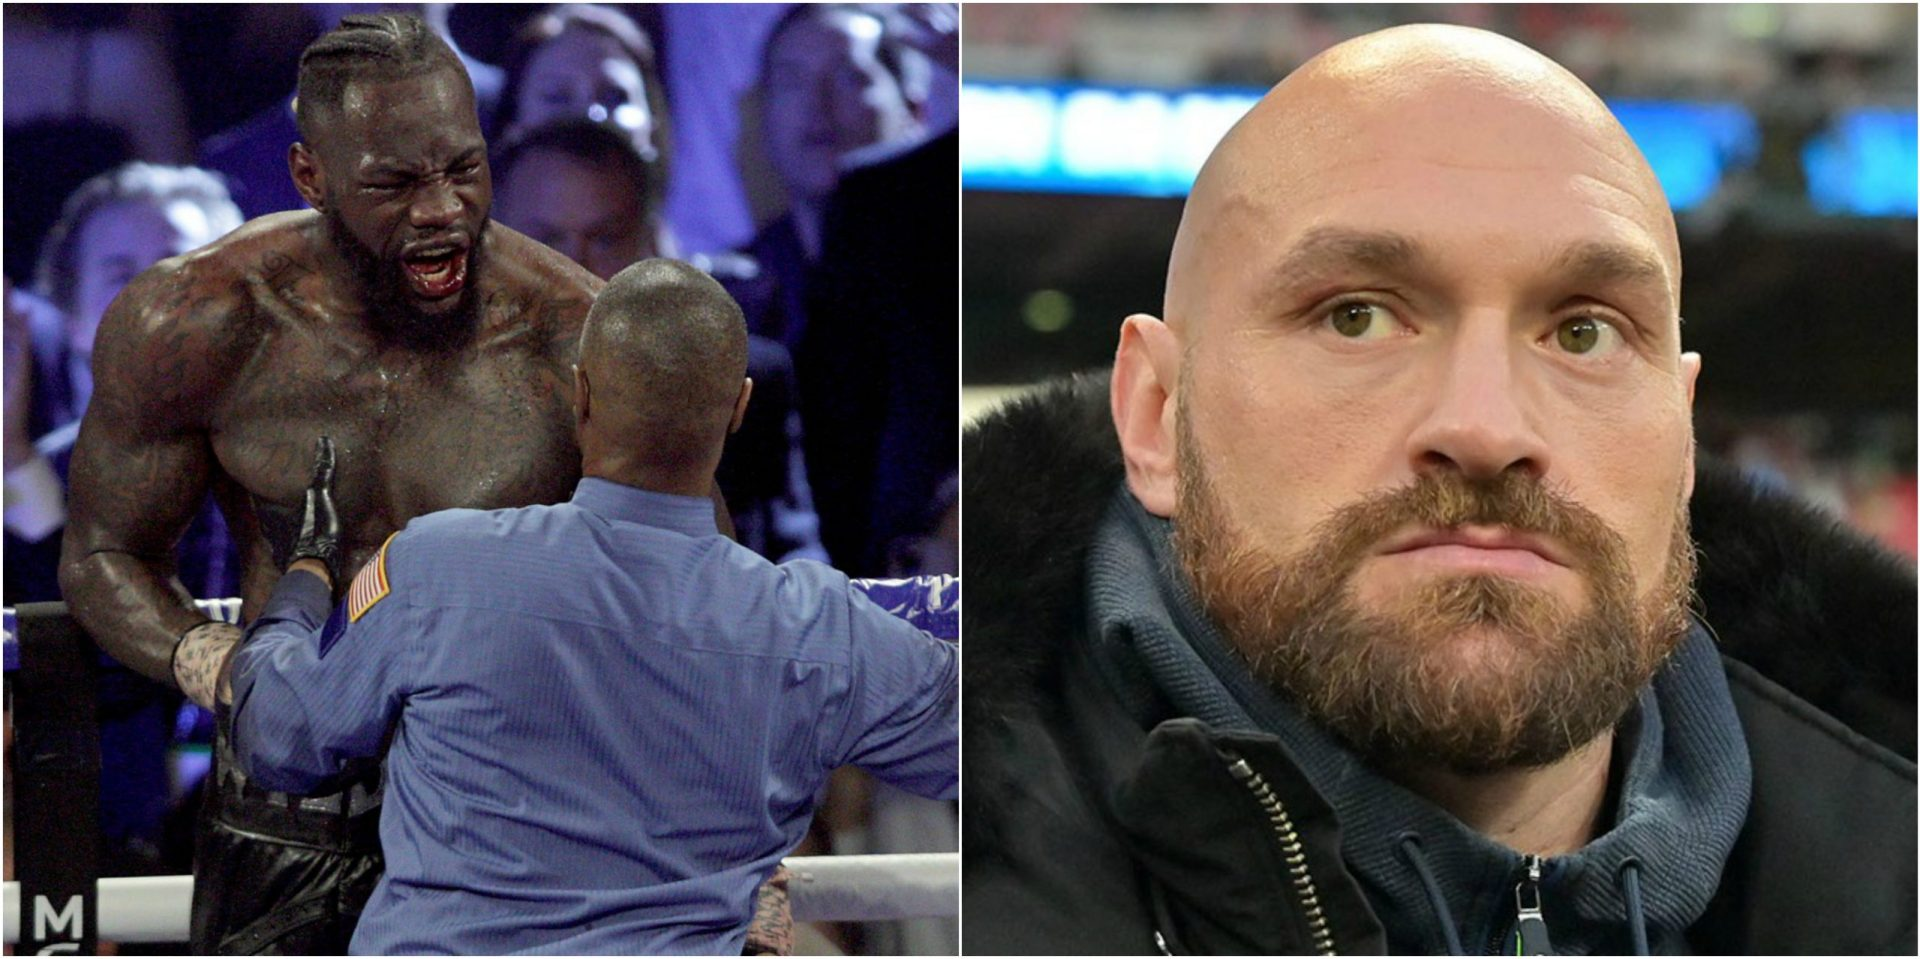 Tyson Fury responds to Deontay Wilder accusing him of cheating - THE SPORTS ROOM